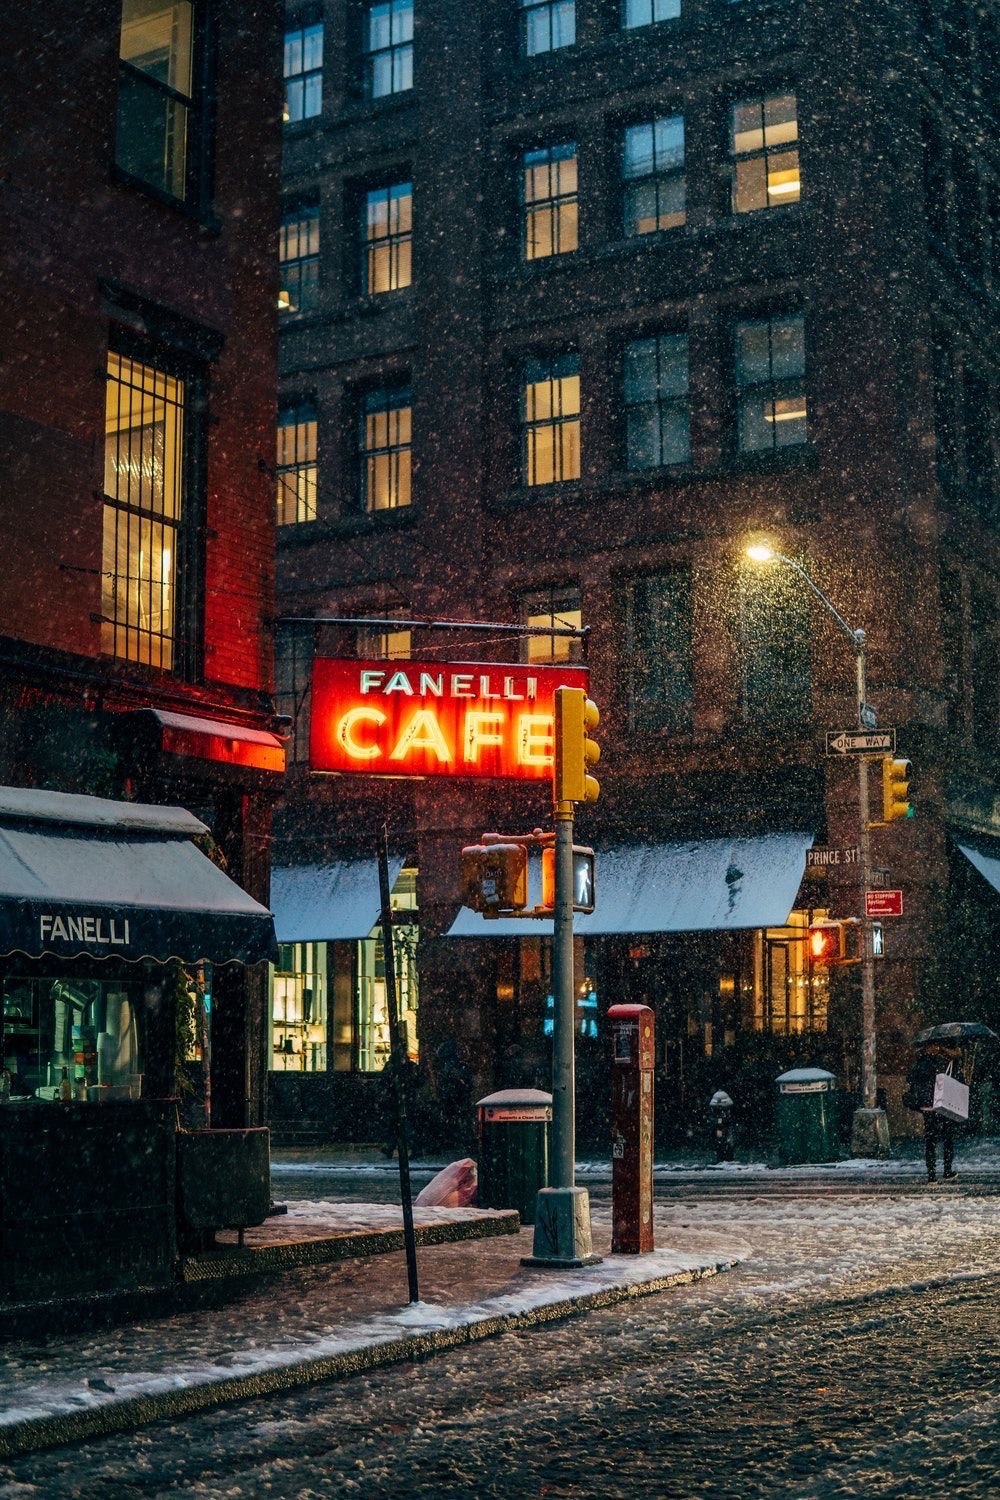 Fanelli Cafe - unsplash.com